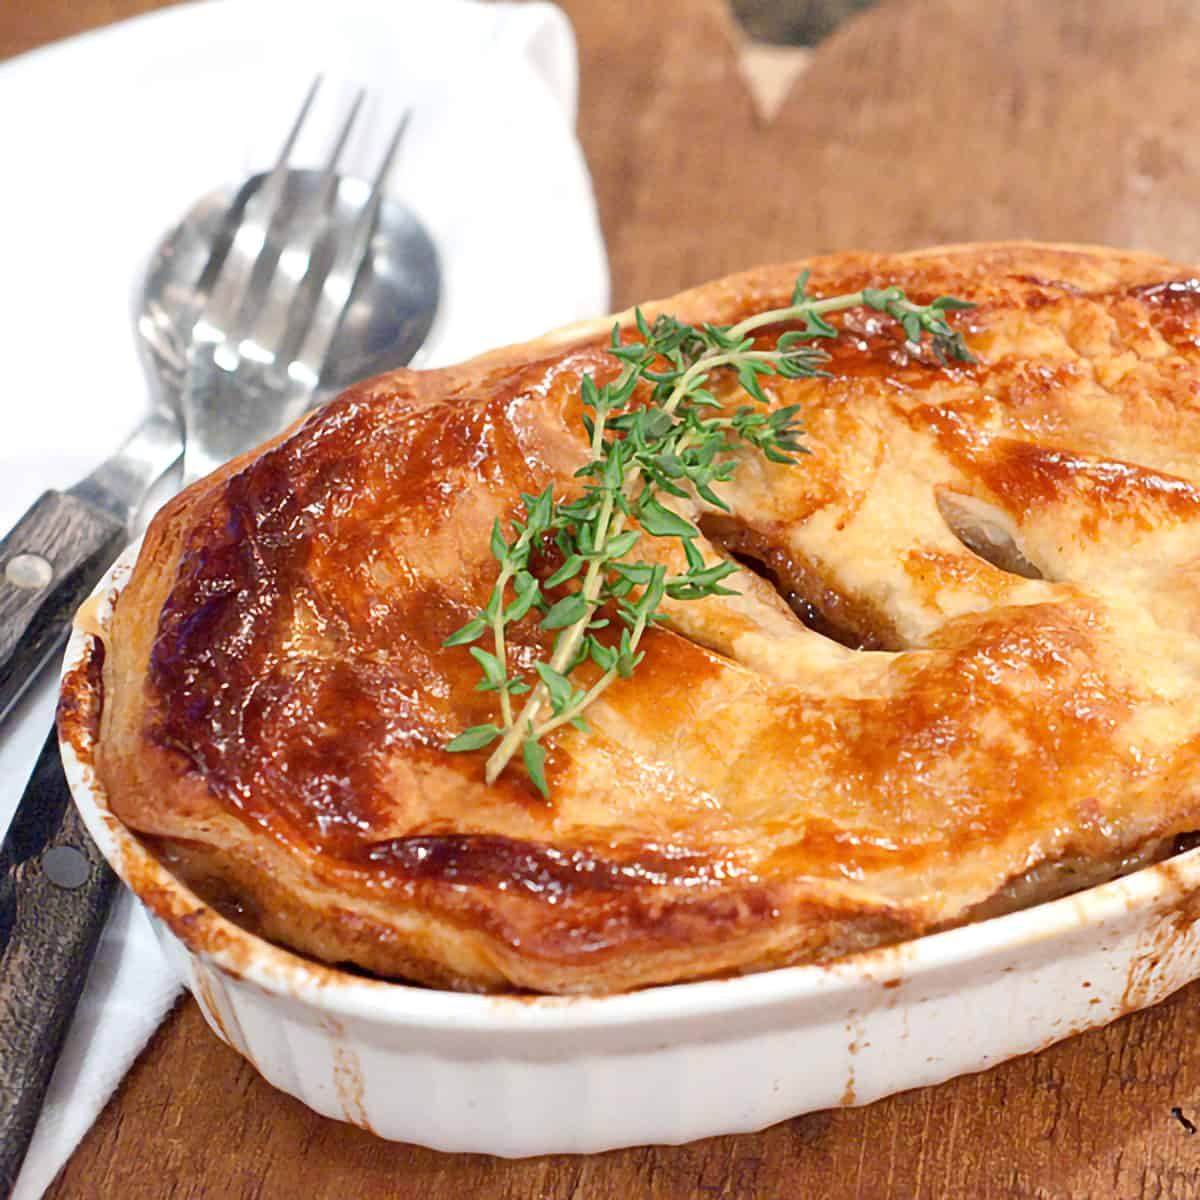 A rich, savory Beef and Stout pie with mushrooms and onions. Wonderfully comforting traditional Irish food. https://www.lanascooking.com/beef-and-stout-pie/